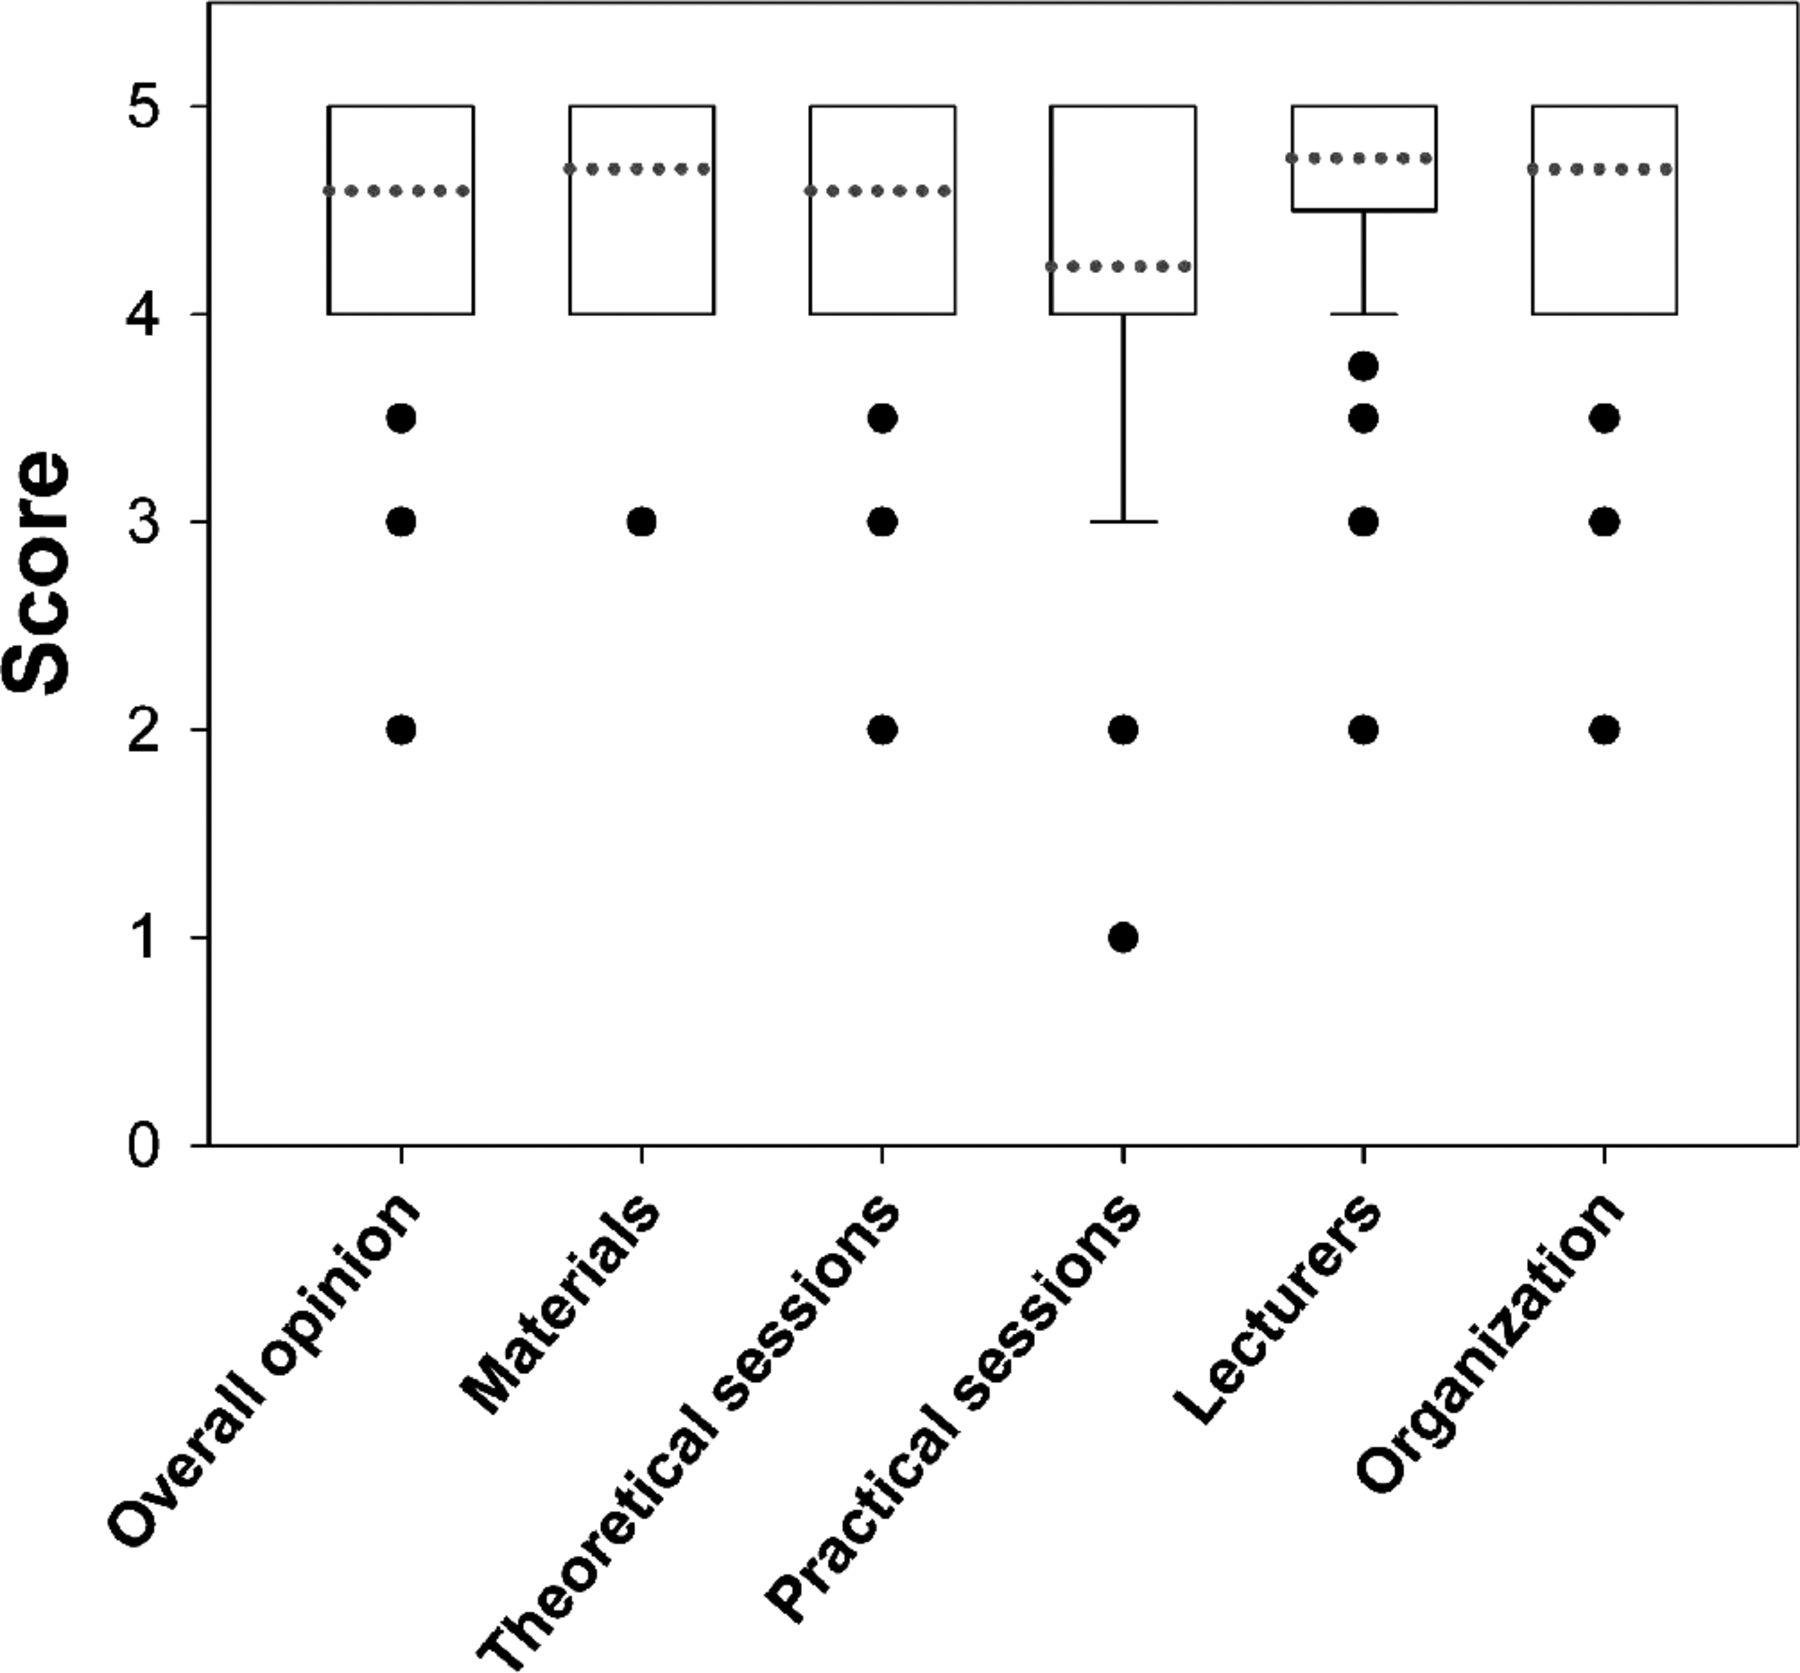 Students' satisfaction and perceived impact on knowledge